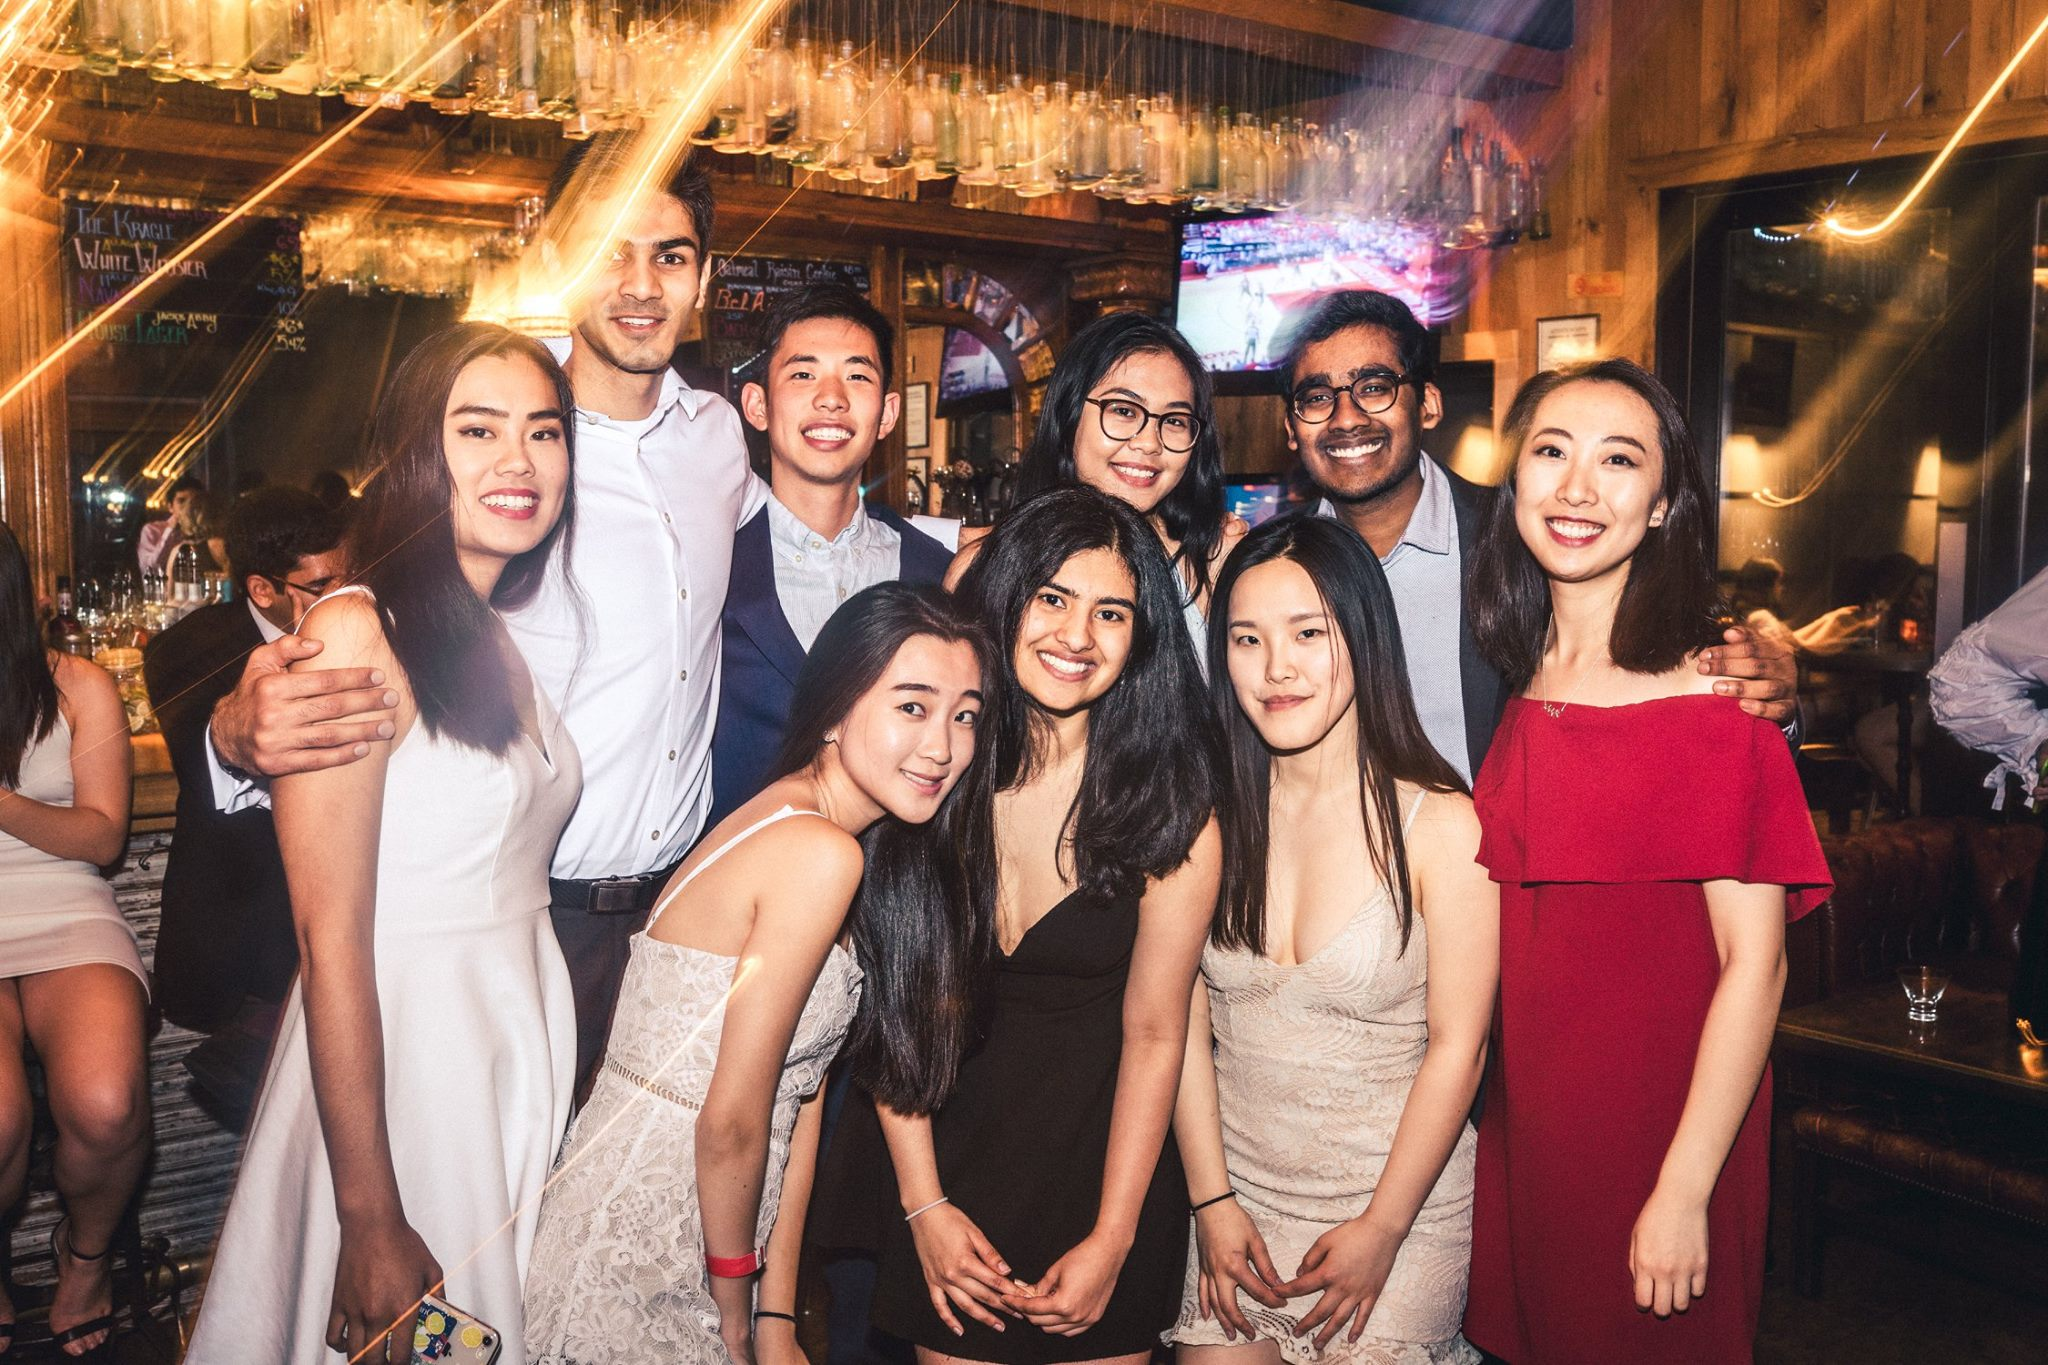 2018 Spring Formal - AIS had its Spring Formal at the Revolution House in Old City. Everyone at Penn was invited to attend and people who did come had a great time! Finger snacks and drinks were served at the venue. It was the perfect ending of a semester!